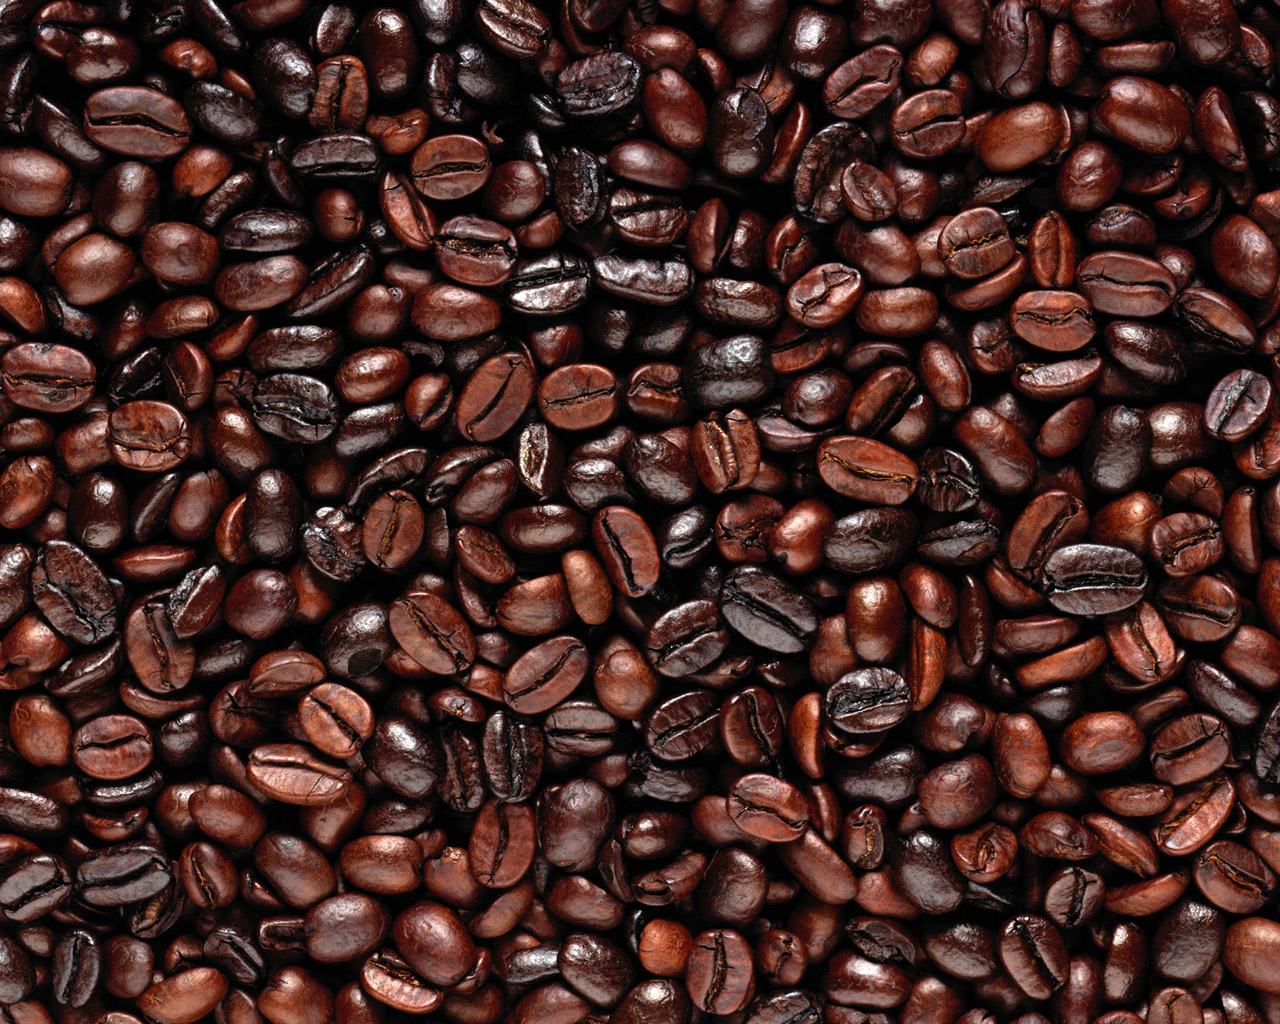 coffee backgrounds,coffee beans,wallpapers,coffee backgrounds grains_of_coffee_goods_1280x1024.jpg,pictures,hd,wallpaper